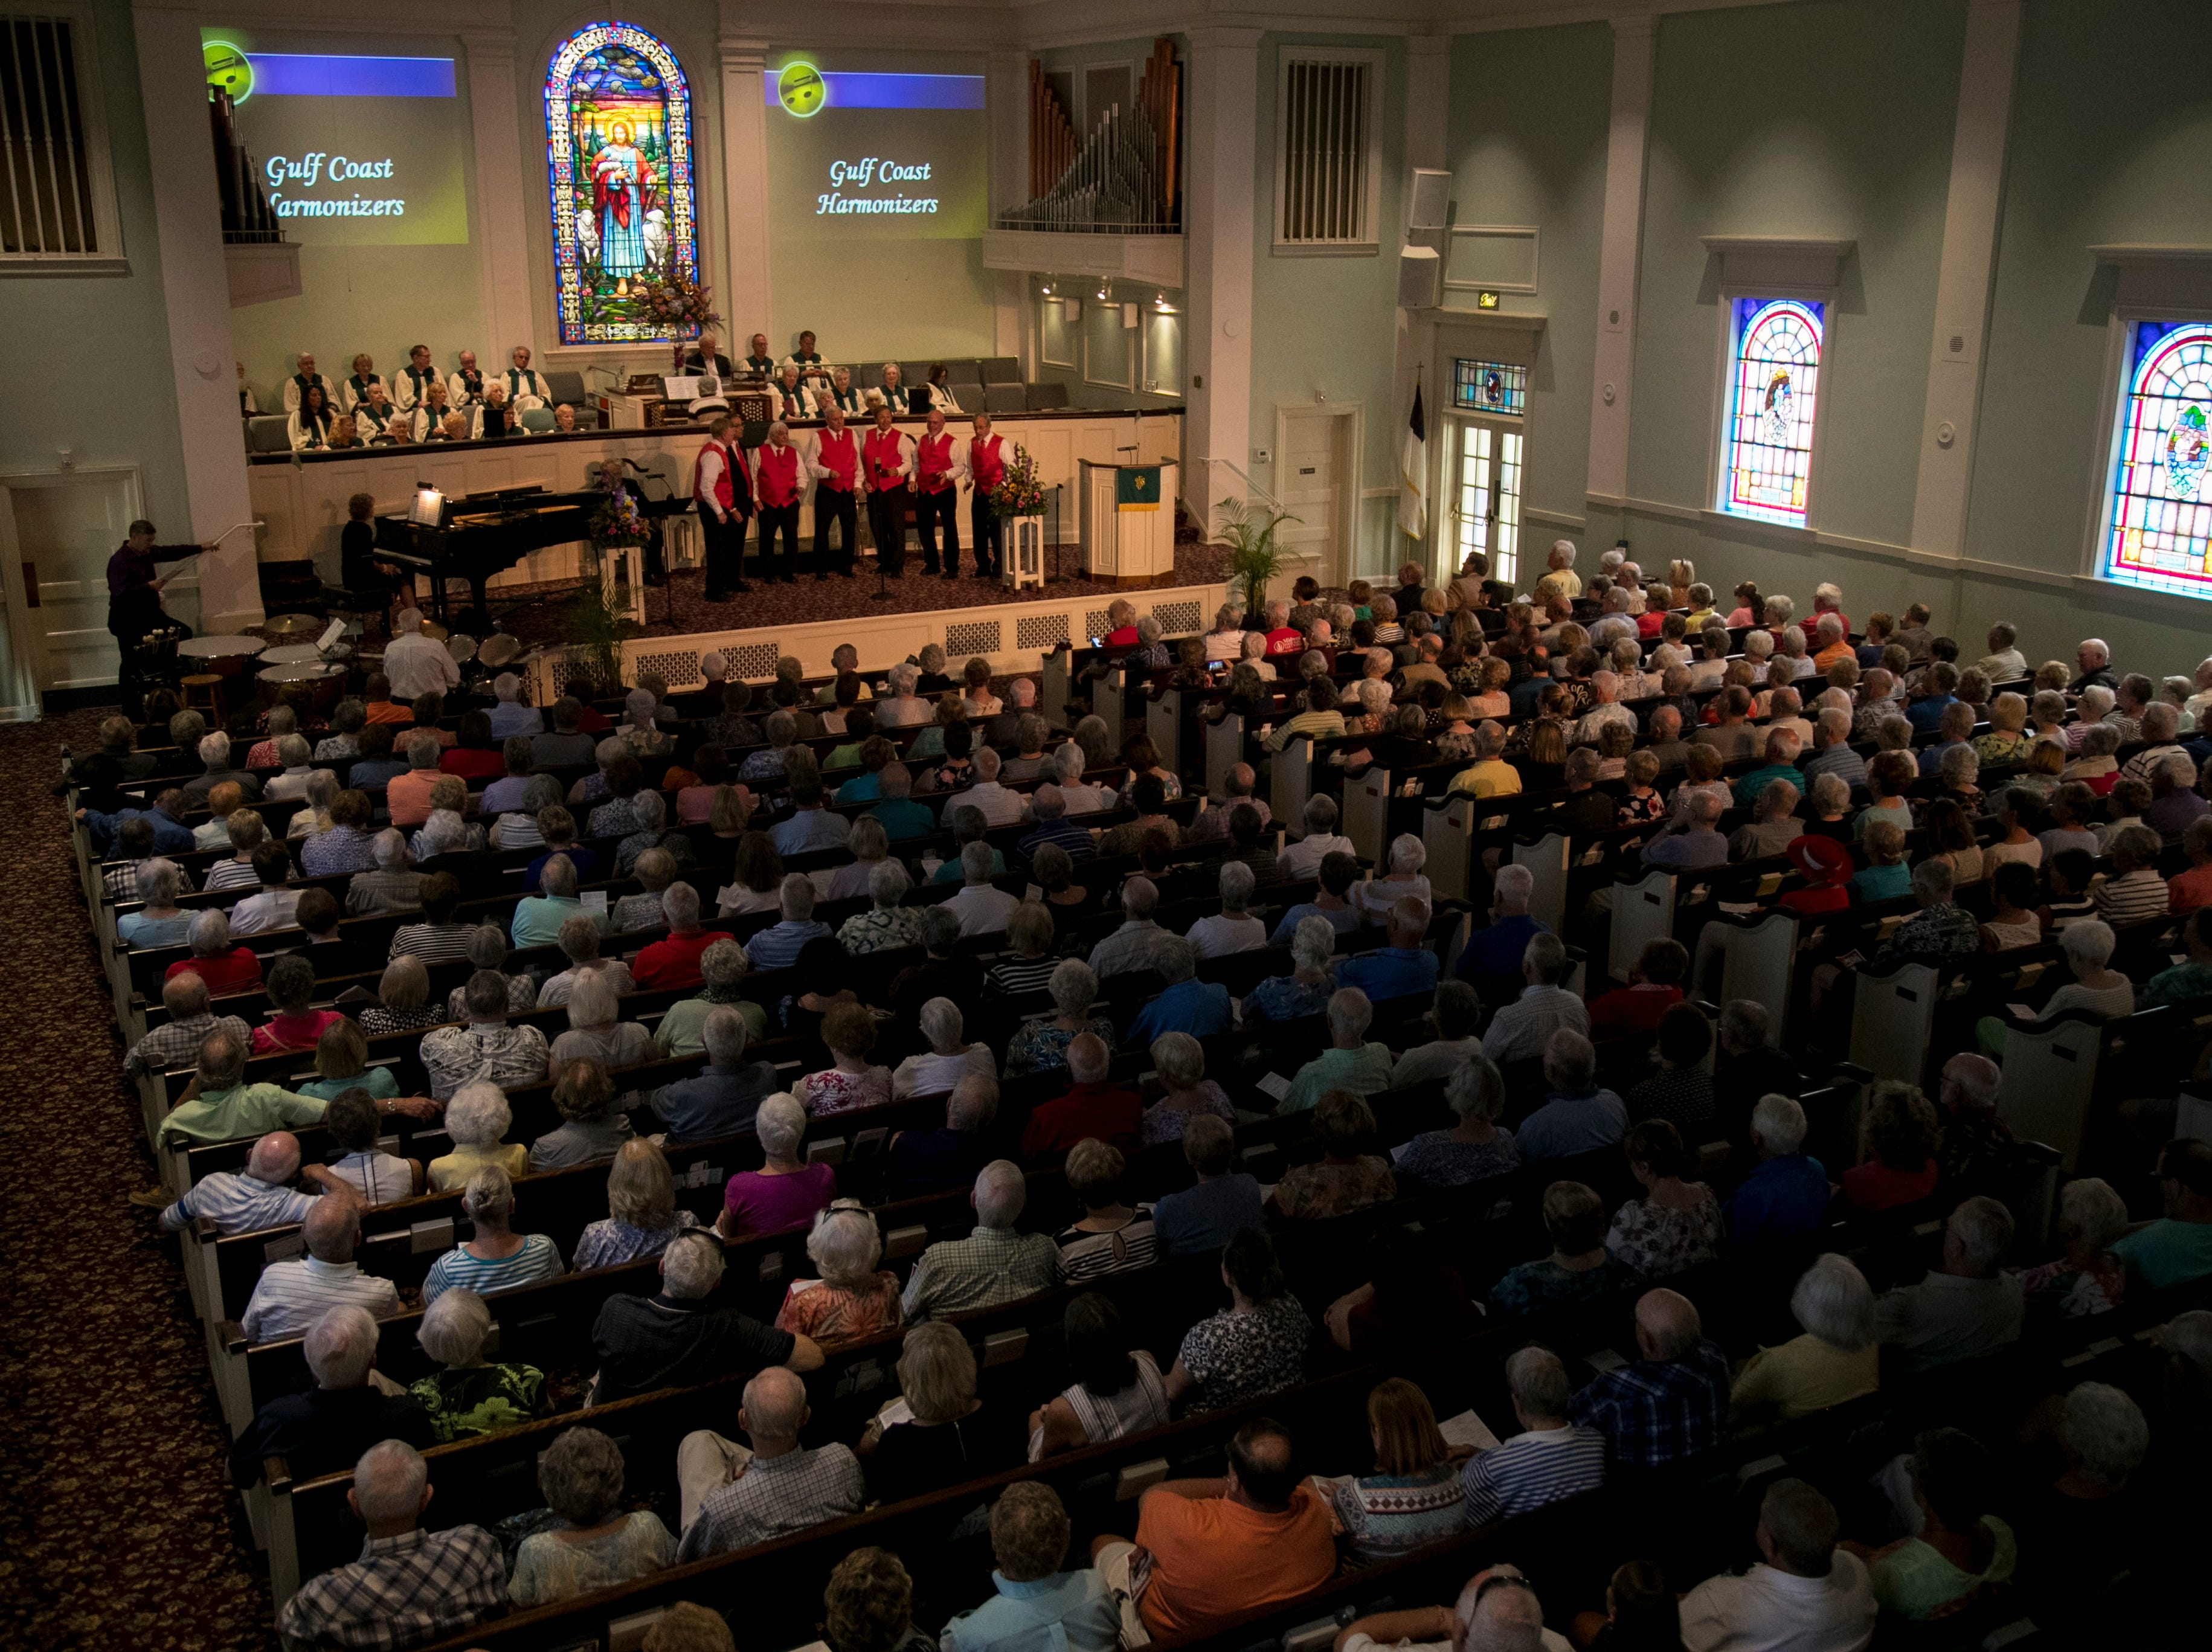 The Gulf Coast Harmonizers perform to a packed house on Tuesday, Feb. 5, 2019, during the annual Mrs. Edison's Hymn Sing at First Presbyterian Church in Fort Myers. An overflow room was set up so people could watch the live stream of the performances.